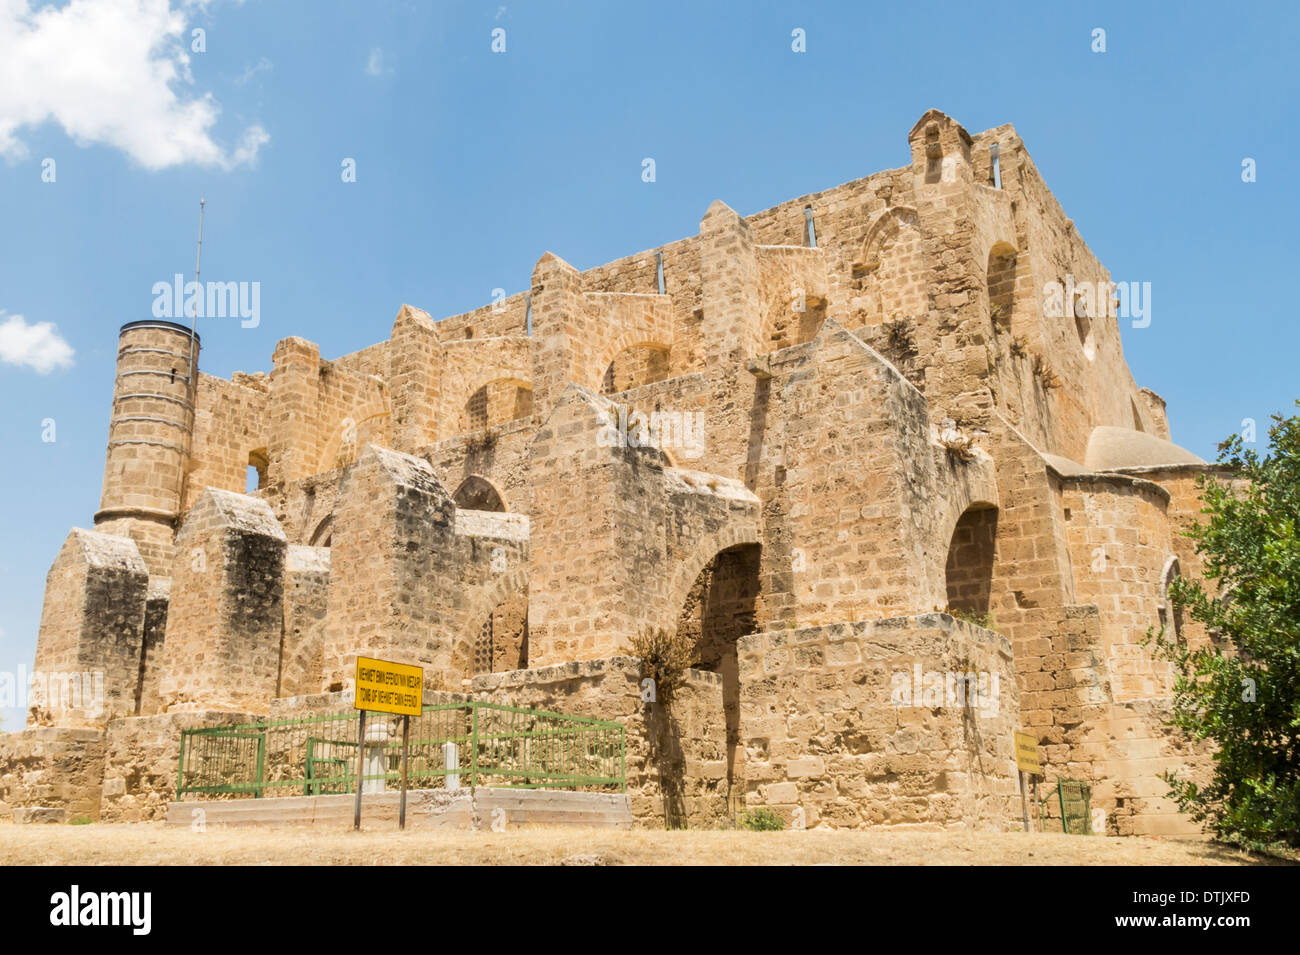 Ruined Tomb of Mehmet Emin Efendi in Famagusta Northern Cyprus - Stock Image